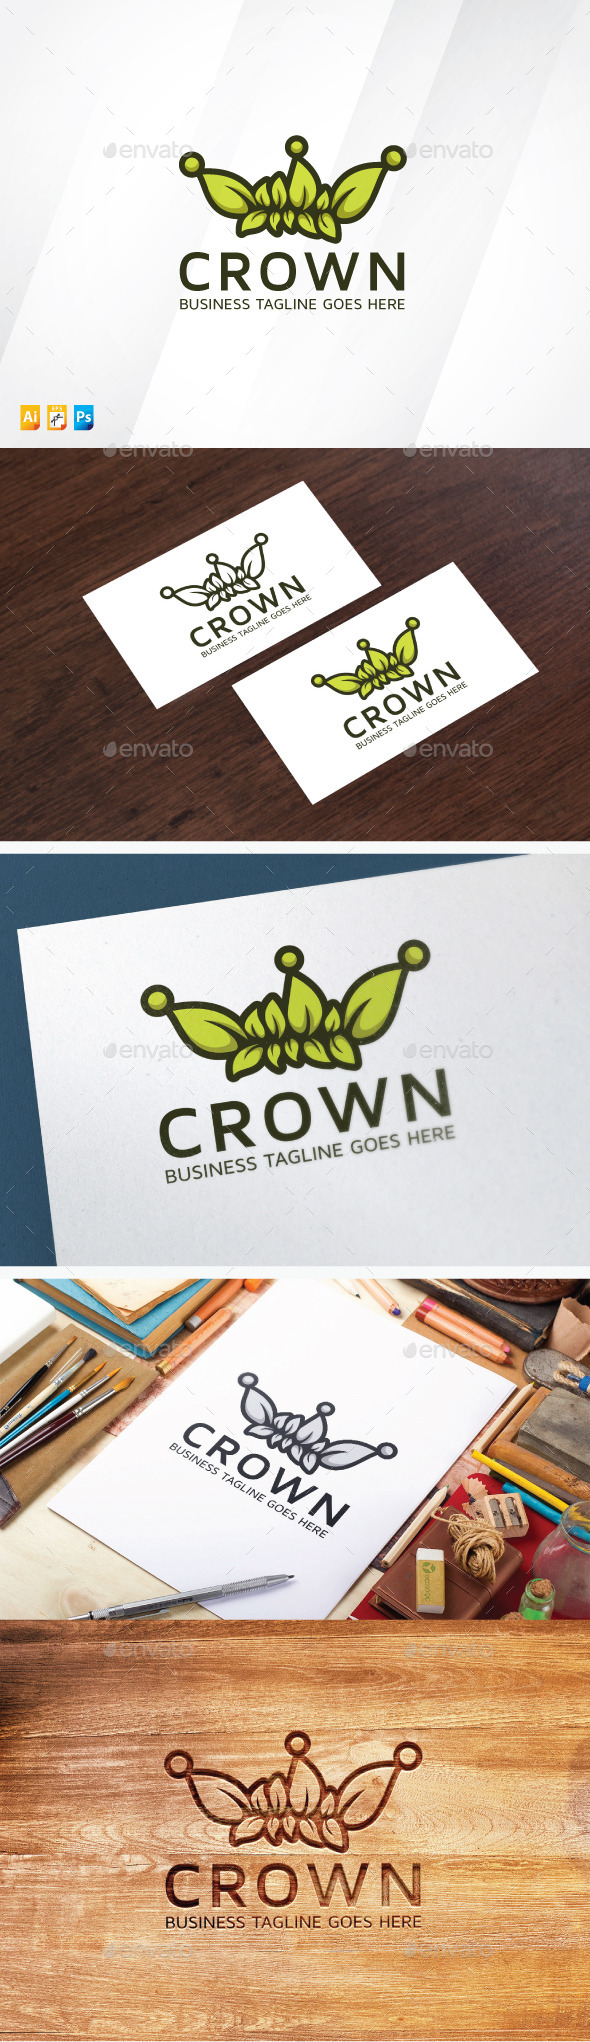 Green Crown Logo - Vector Abstract